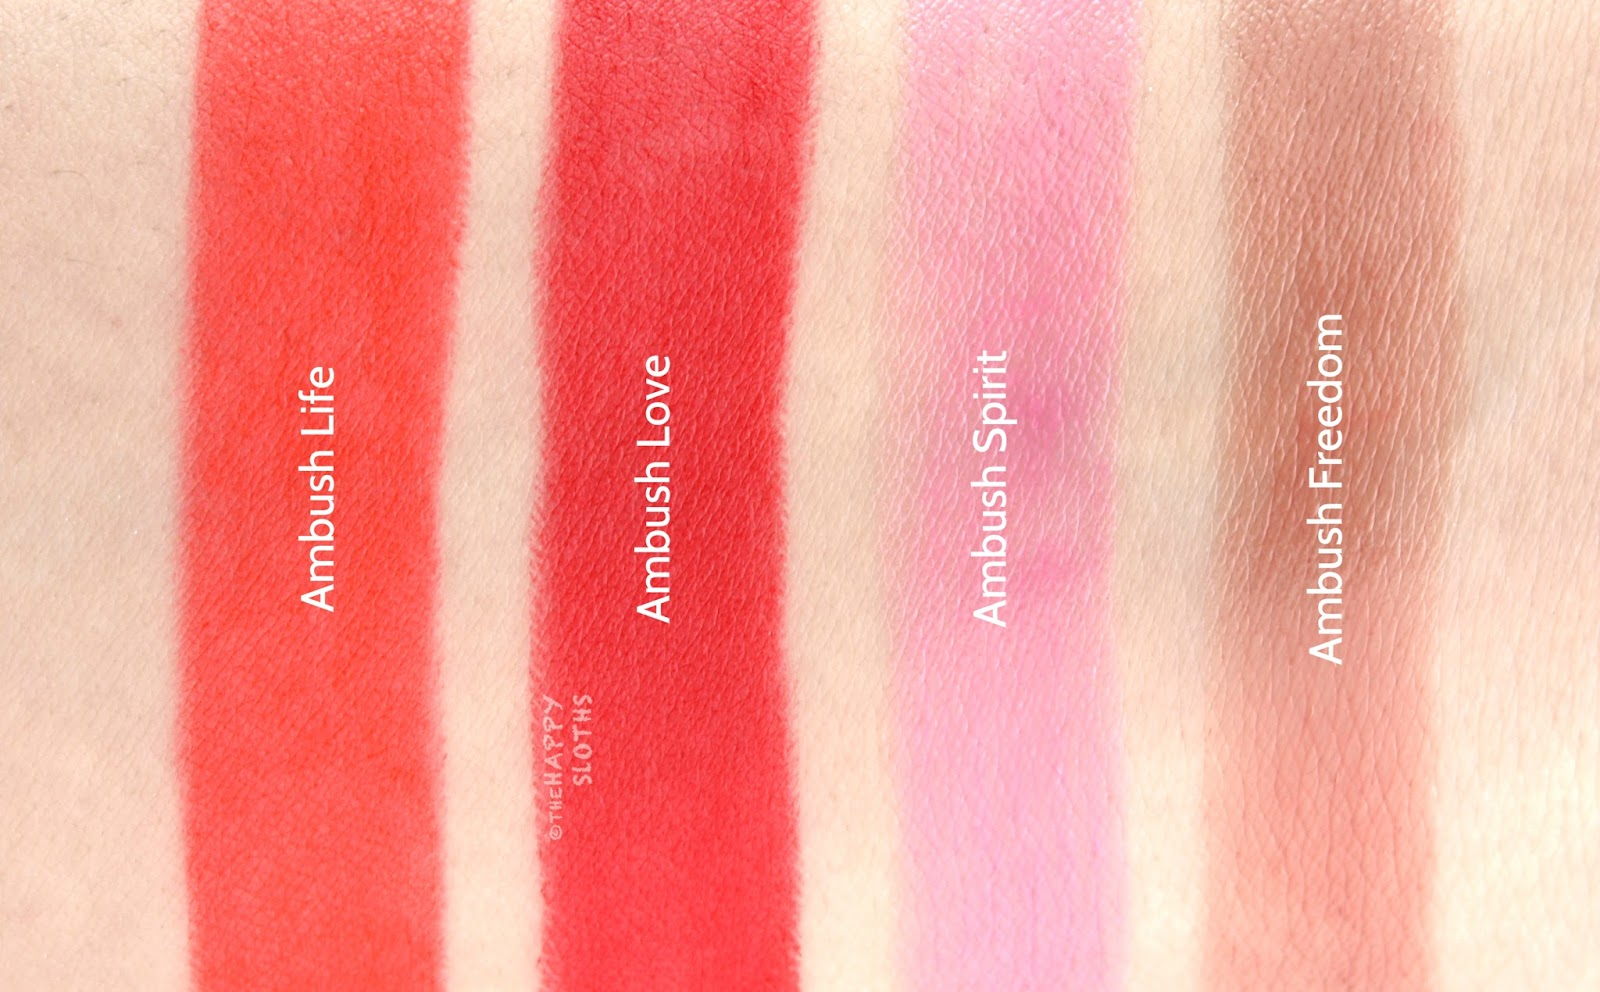 Shu Uemura x AMBUSH Collection | Rouge Unlimited Lipsticks: Review and Swatches